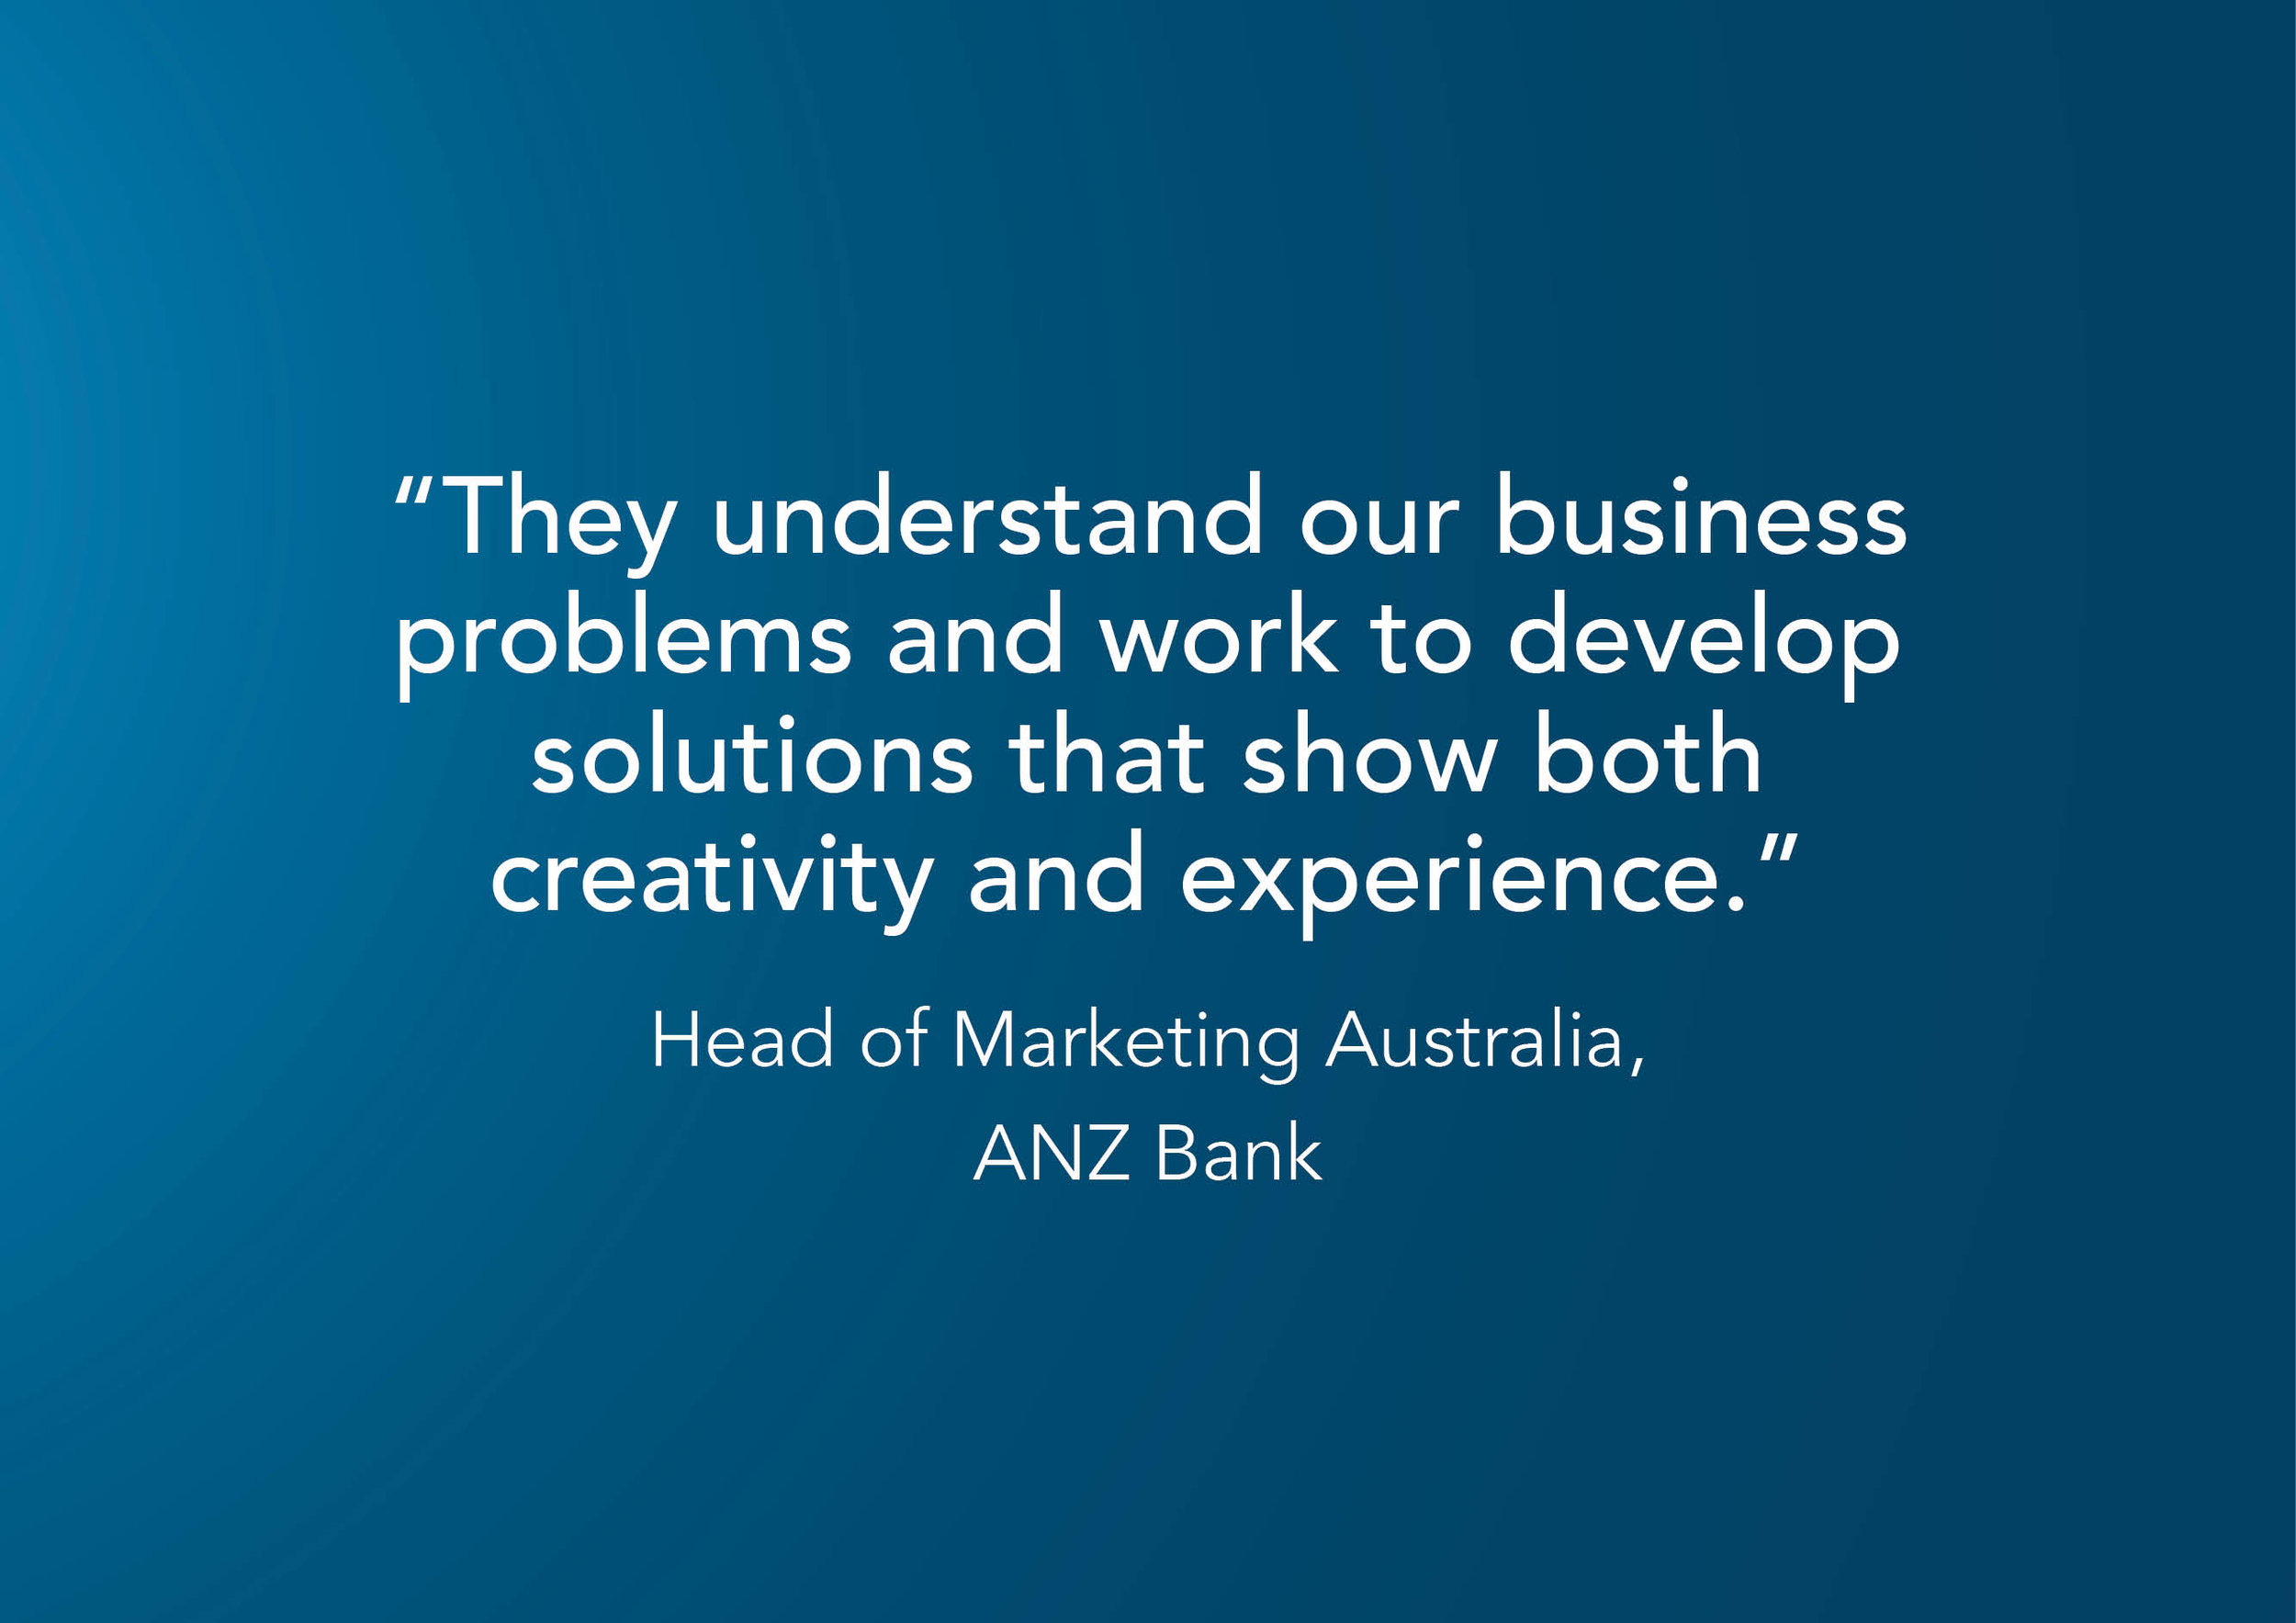 ANZ quote_01.jpg